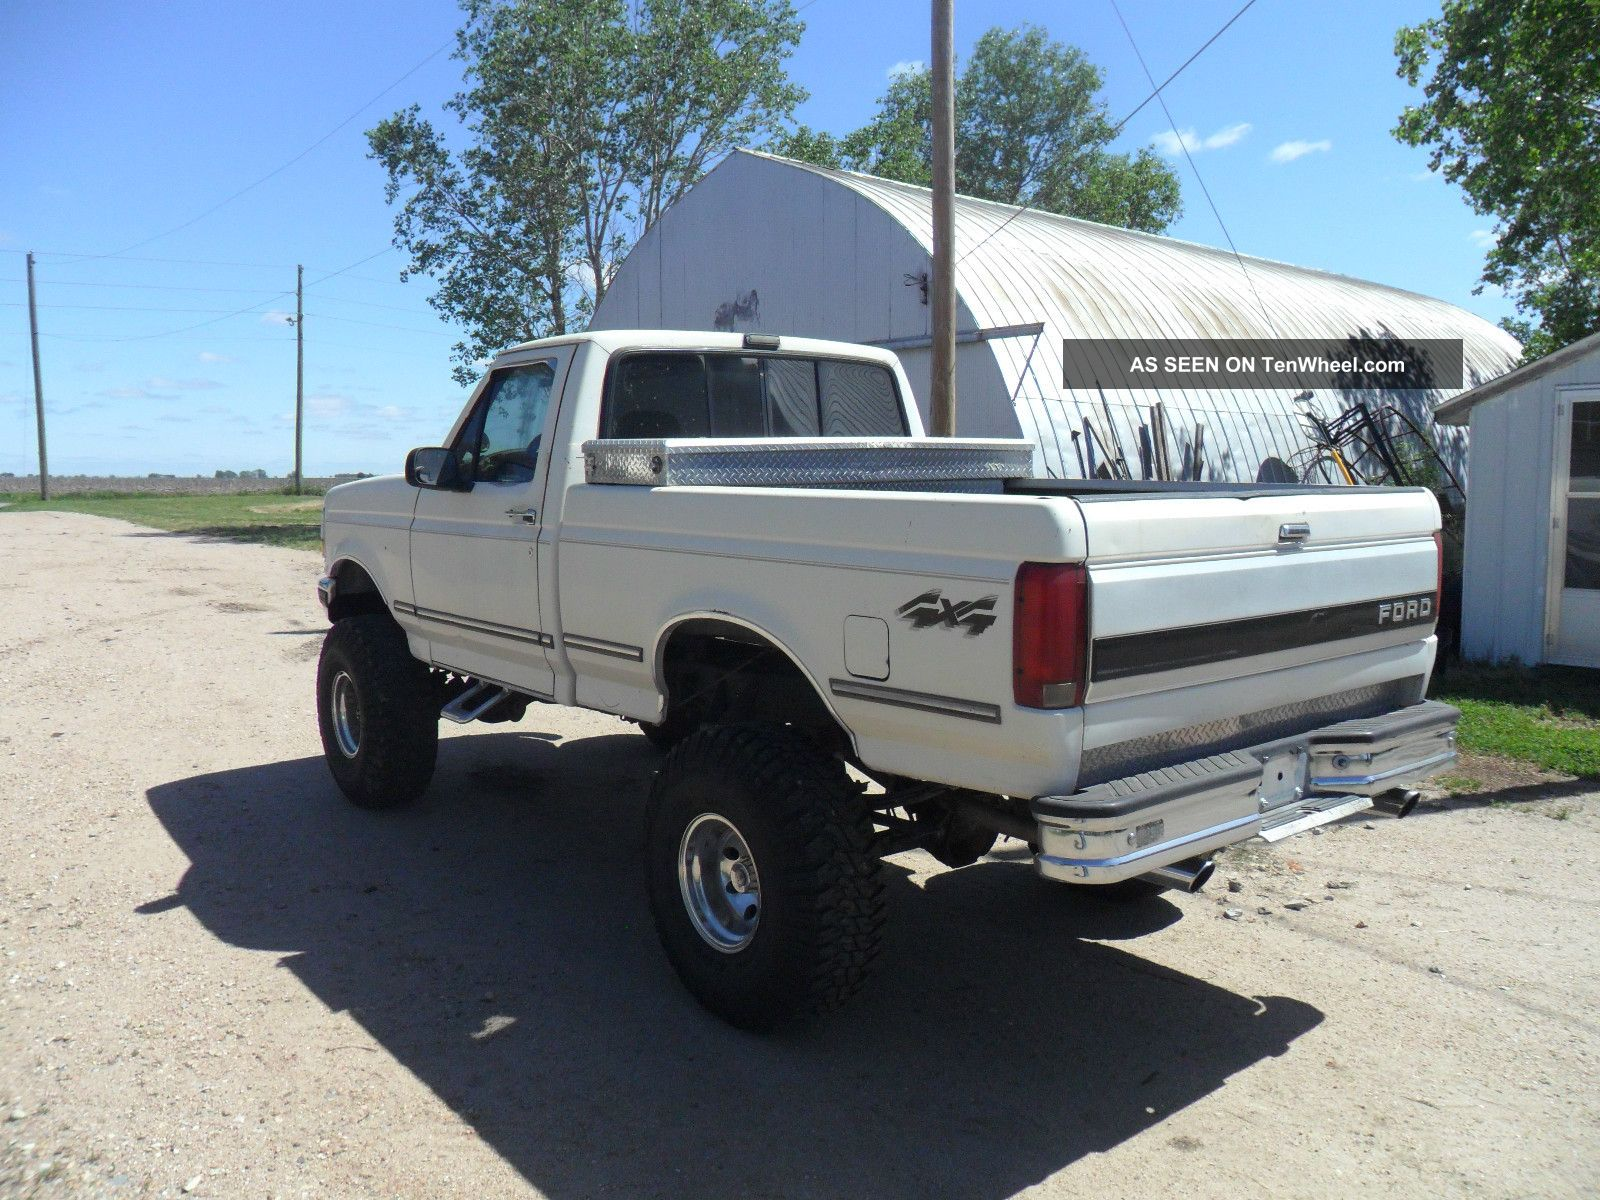 Ford f-150 1992 photo - 10